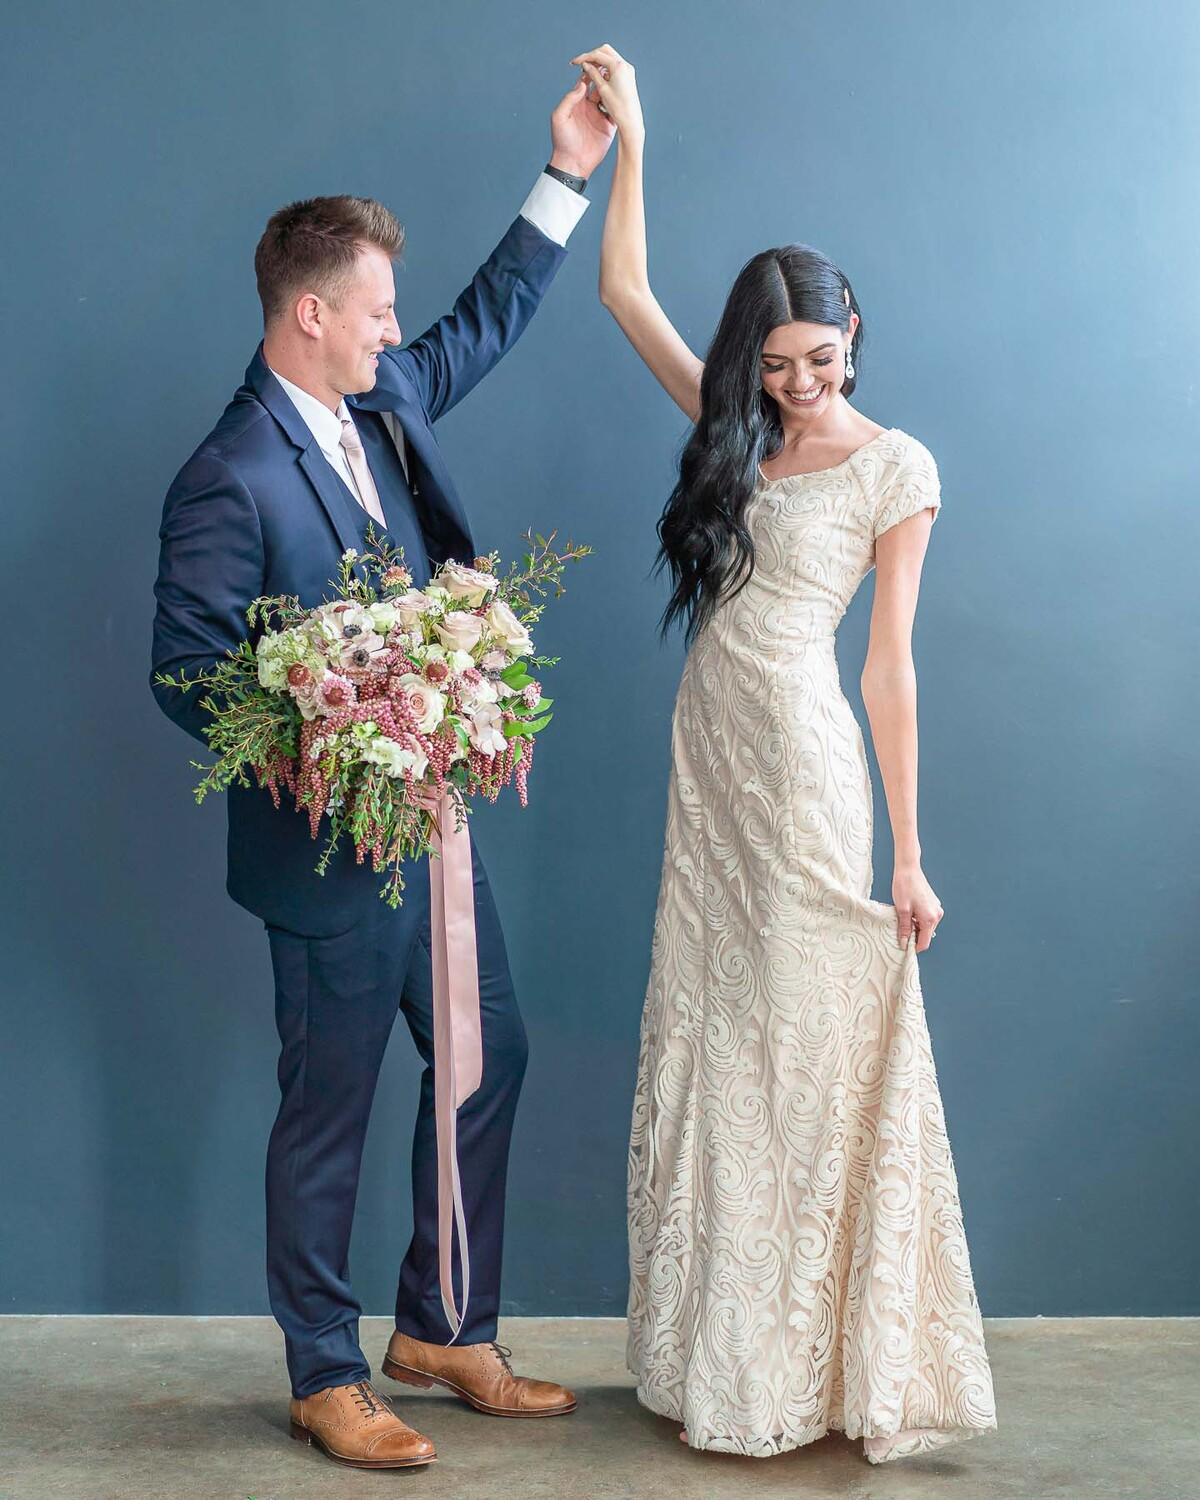 Groom in blue suite with bouquet dancing with bride in cream-colored dress